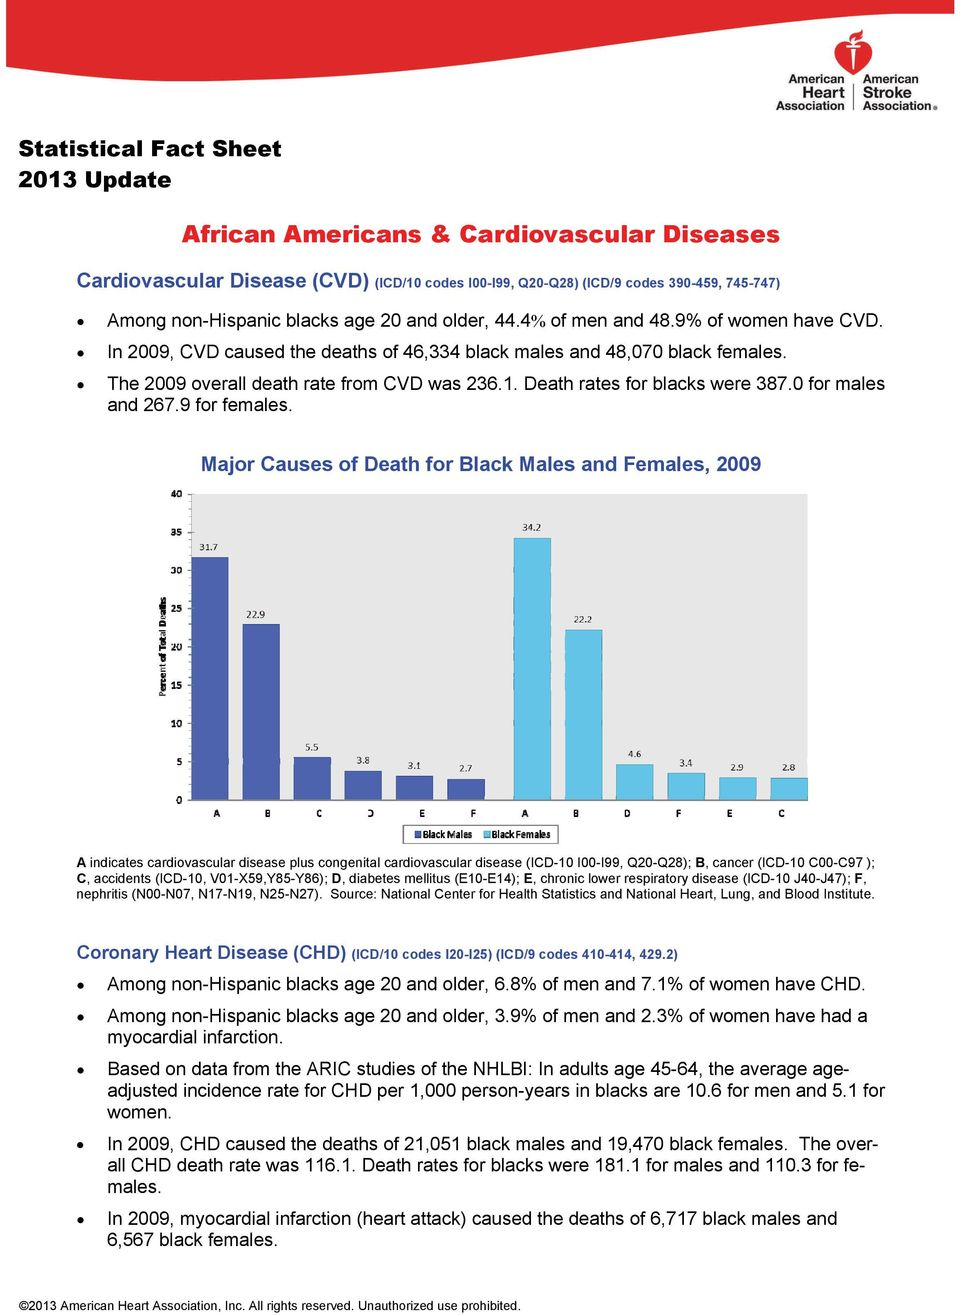 Death rates for blacks were 387.0 for males and 267.9 for females.